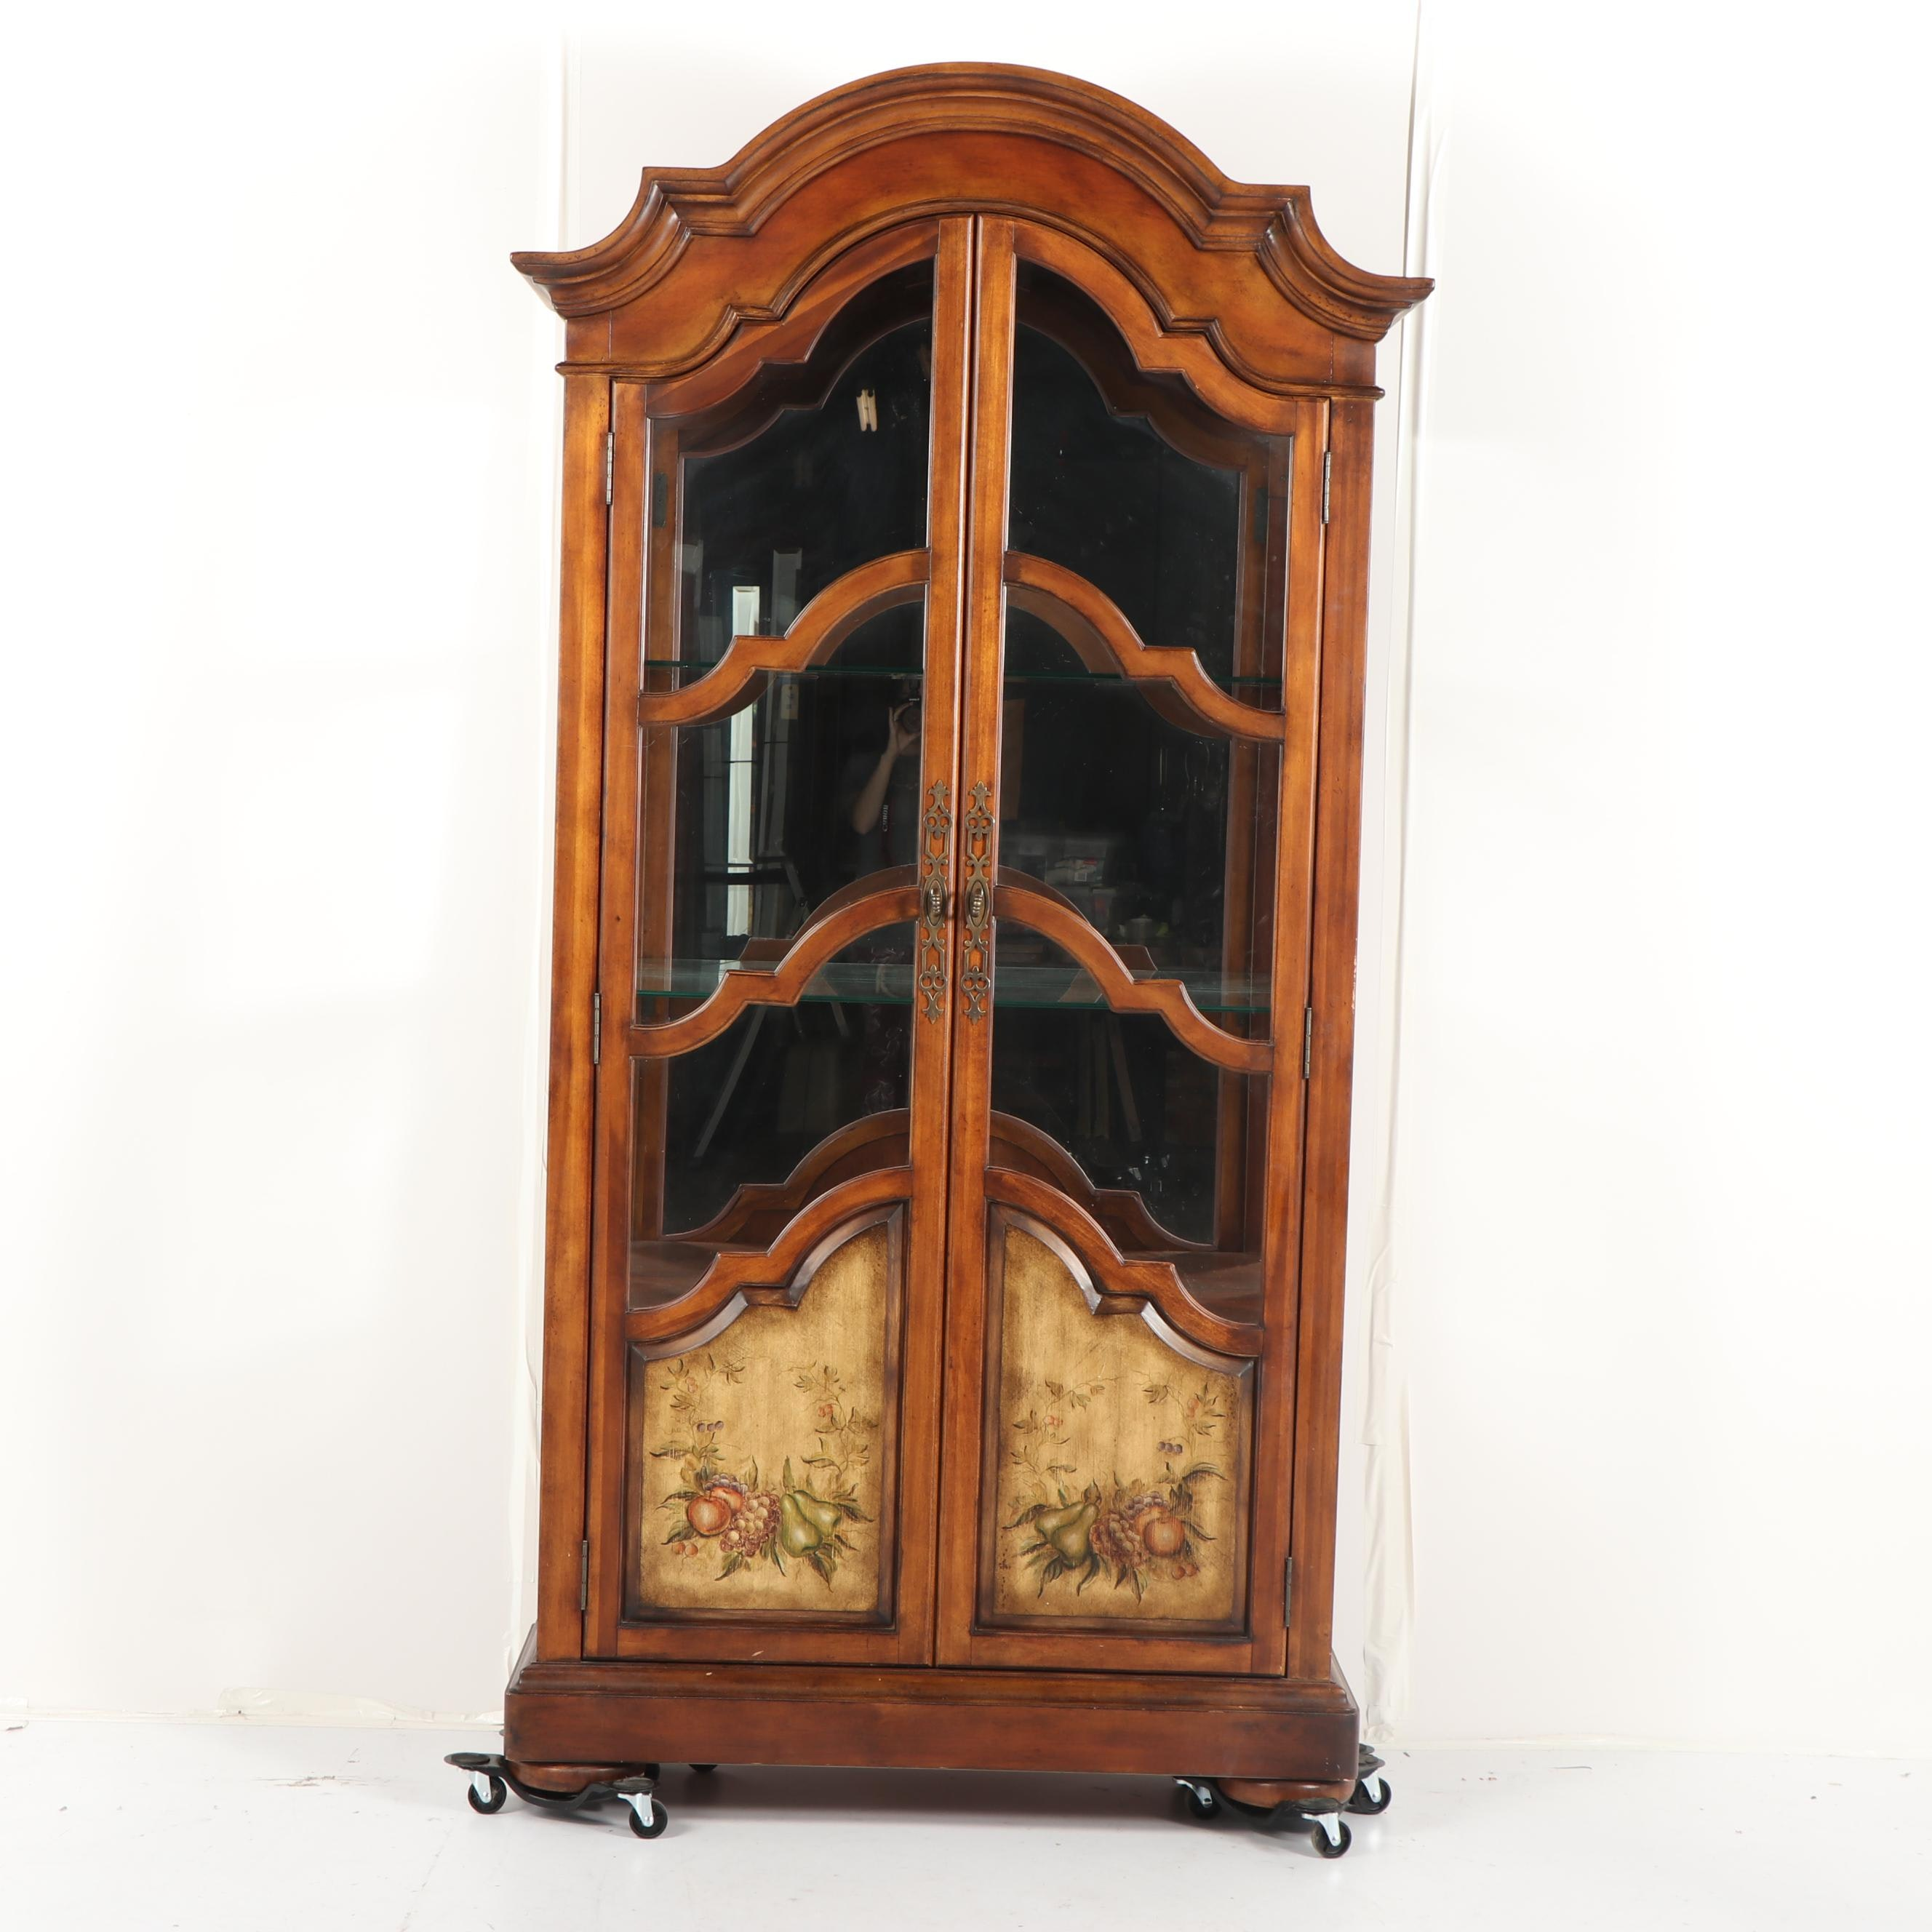 French Provincial Style Walnut Finish Curio Cabinet, 21st Century